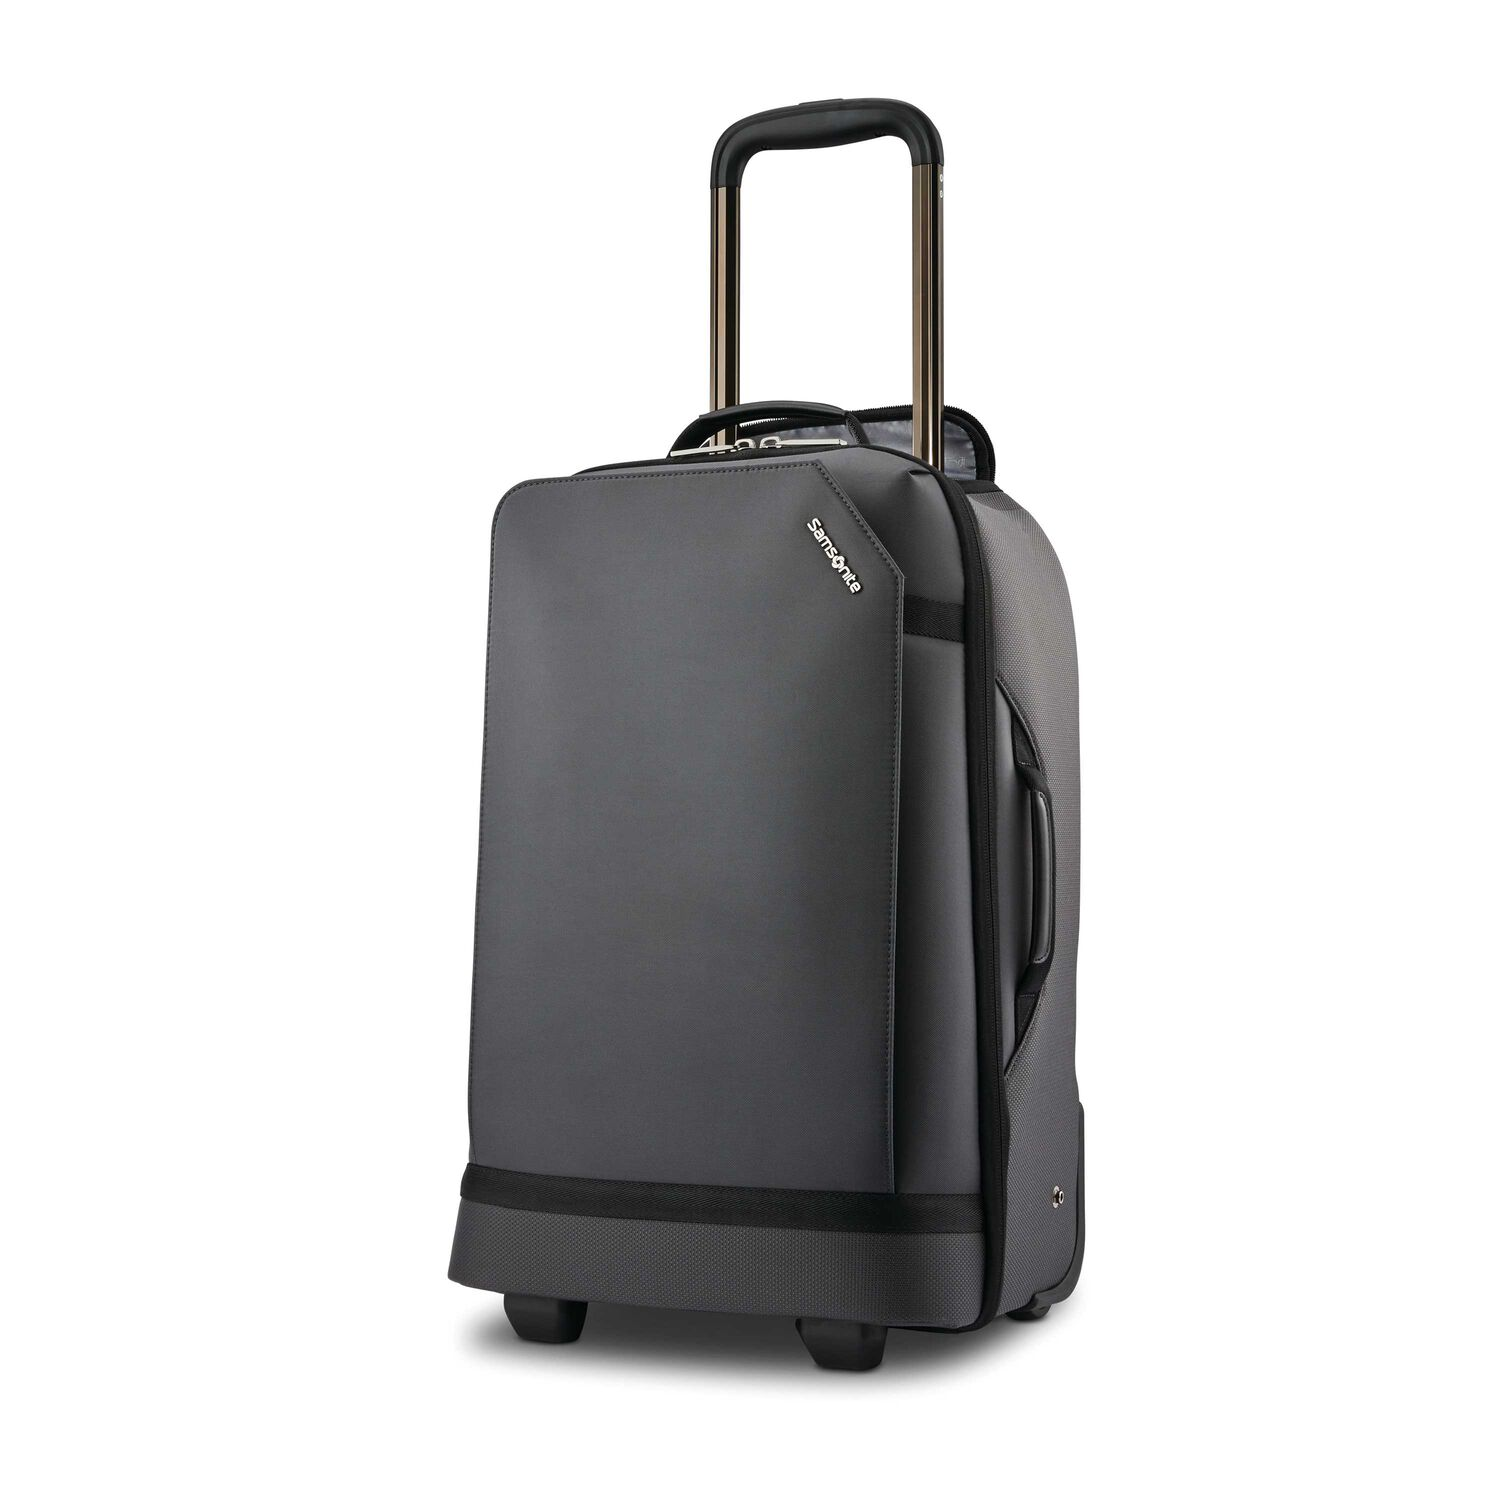 21bb1ca232fc0 Samsonite Encompass Convertible Wheeled Backpack in the color Anthracite  Grey.